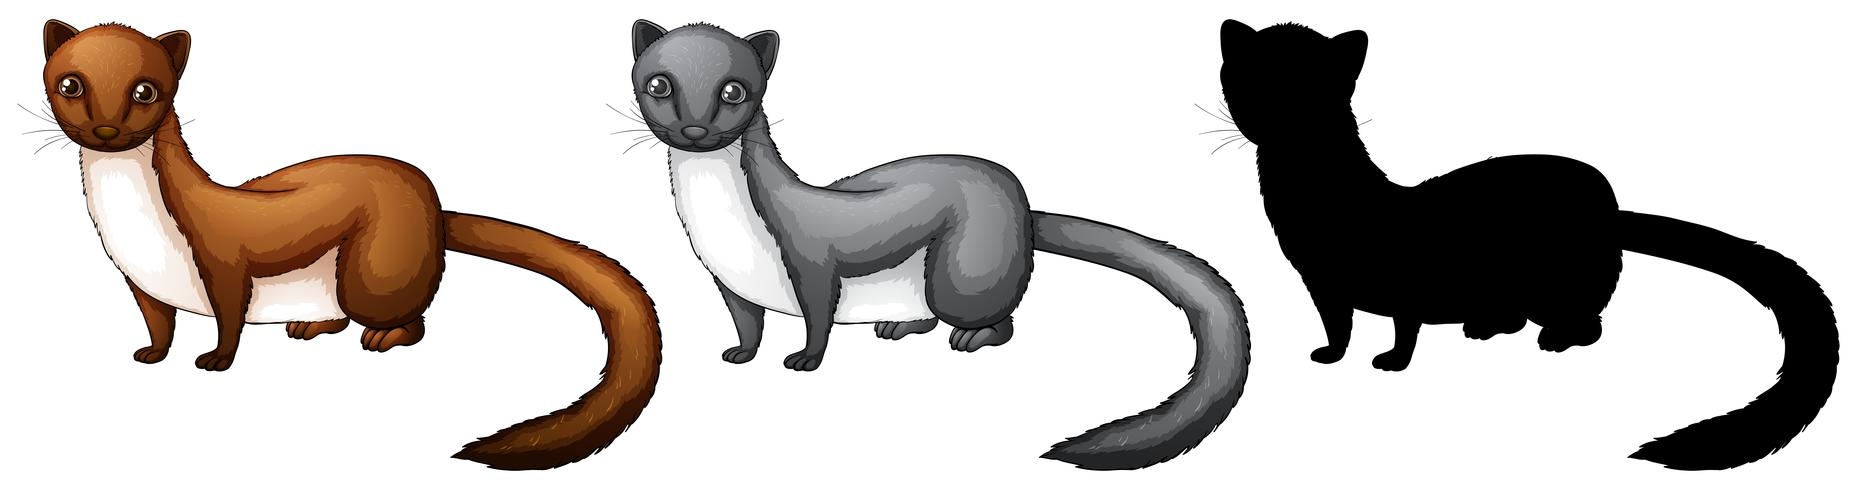 Set of weasel character